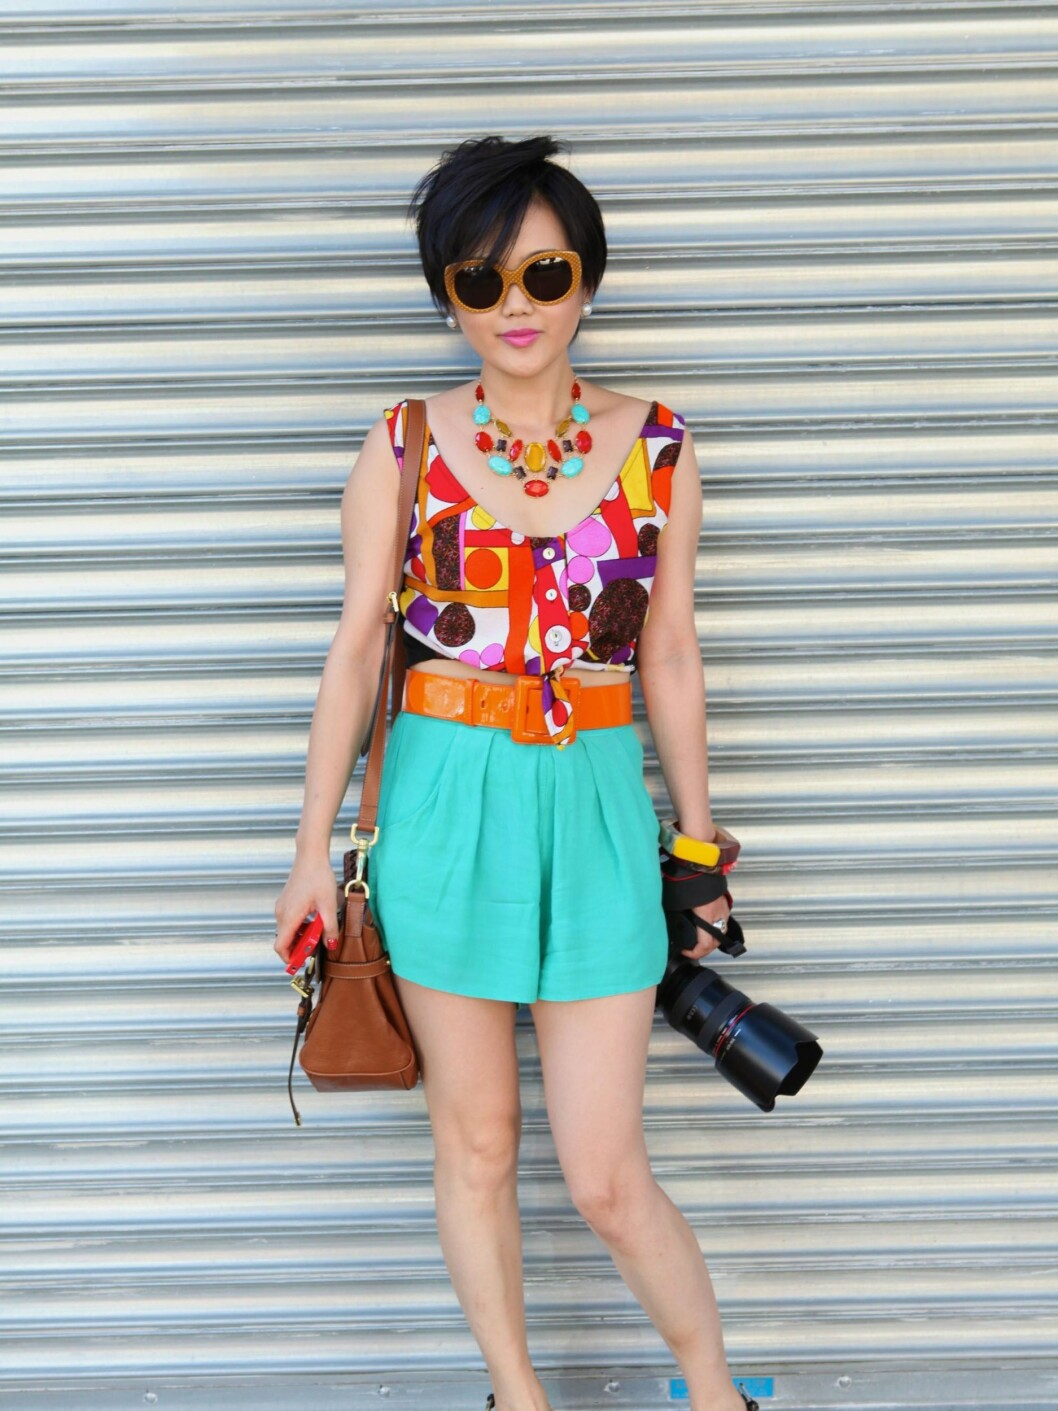 NEW YORK, NY - SEPTEMBER 15: Photographer Tracy Wang seen on the streets of Manhattan to attend the Jason Wu Show for Spring 2012 Fashion Week on September 15, 2011 in New York City. Tracy is from China is sporting a Dior bag and Marc Jacobs bangles. (Photo by Sonja T Georgevich/Getty Images) By: All Over Press / Getty Images CODE: GE01X8 Foto: All Over Press